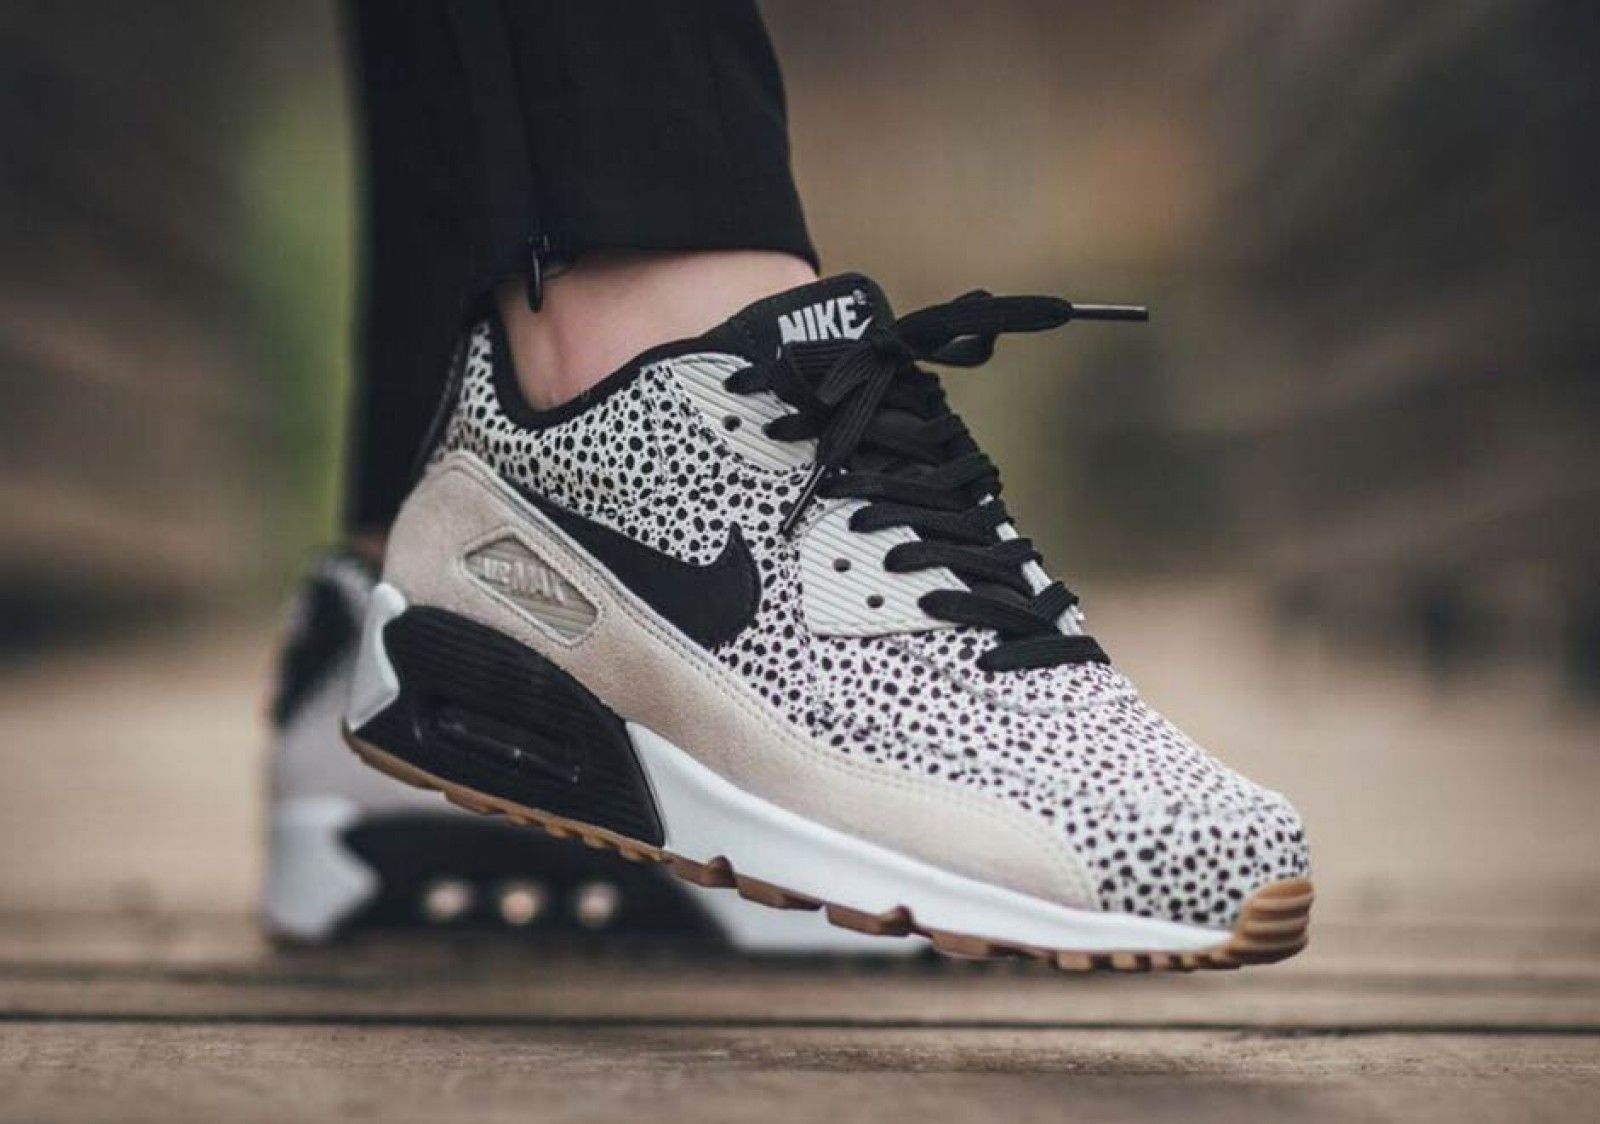 Nike Wmns Air Max 90 PRM White/Black-Gum Light Brown ...